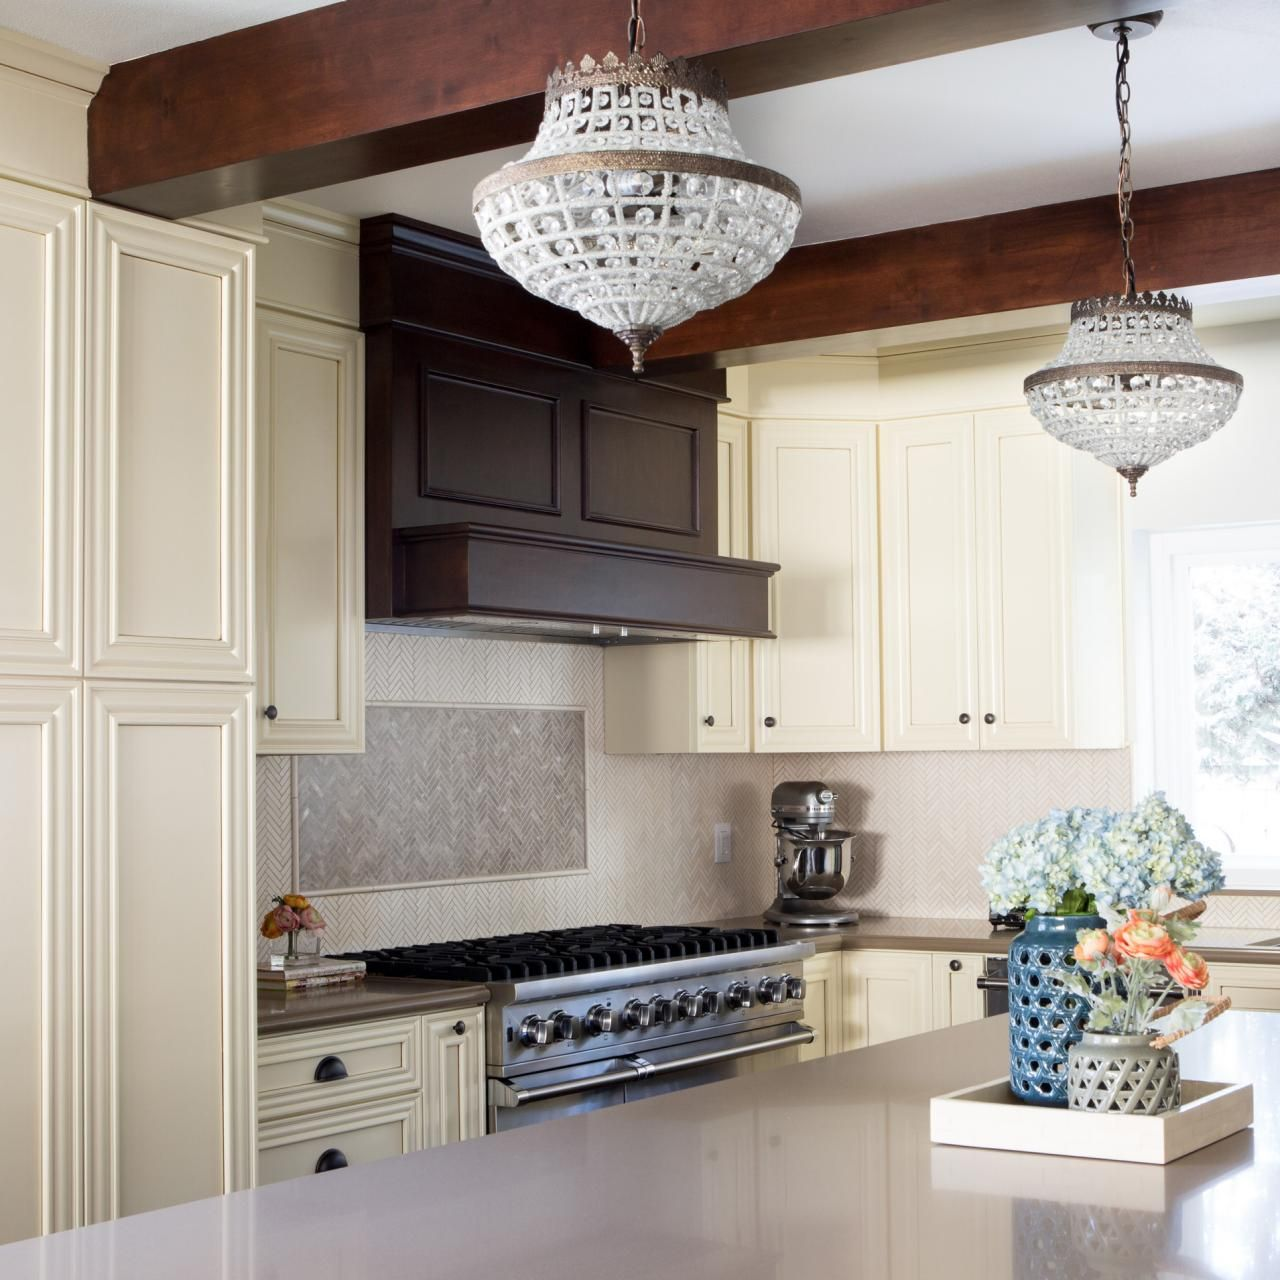 This traditional kitchen keeps things minimal and clean two this traditional kitchen keeps things minimal and clean two miniature chandeliers hang from the ceiling arubaitofo Choice Image